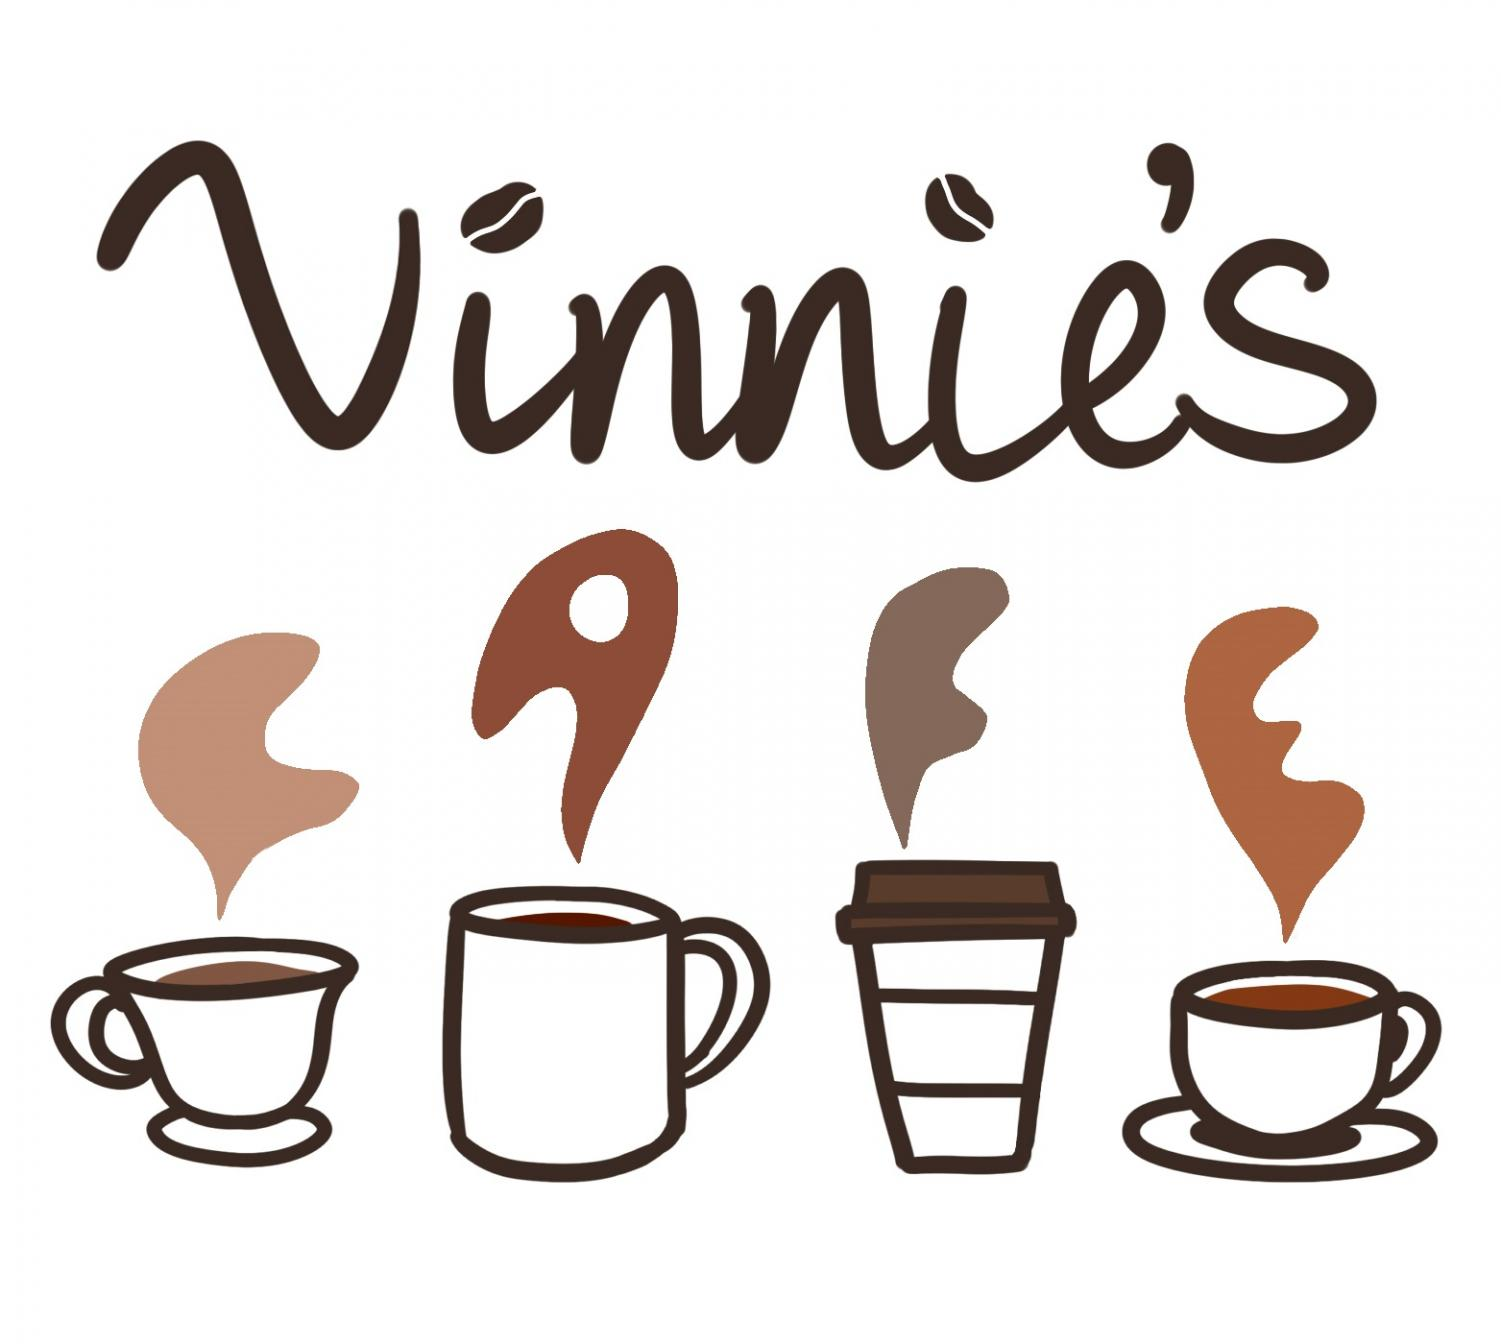 This logo was chosen by student vote out of a select variety of design contest submissions. It will be appearing around the school to represent the cafe shortly.